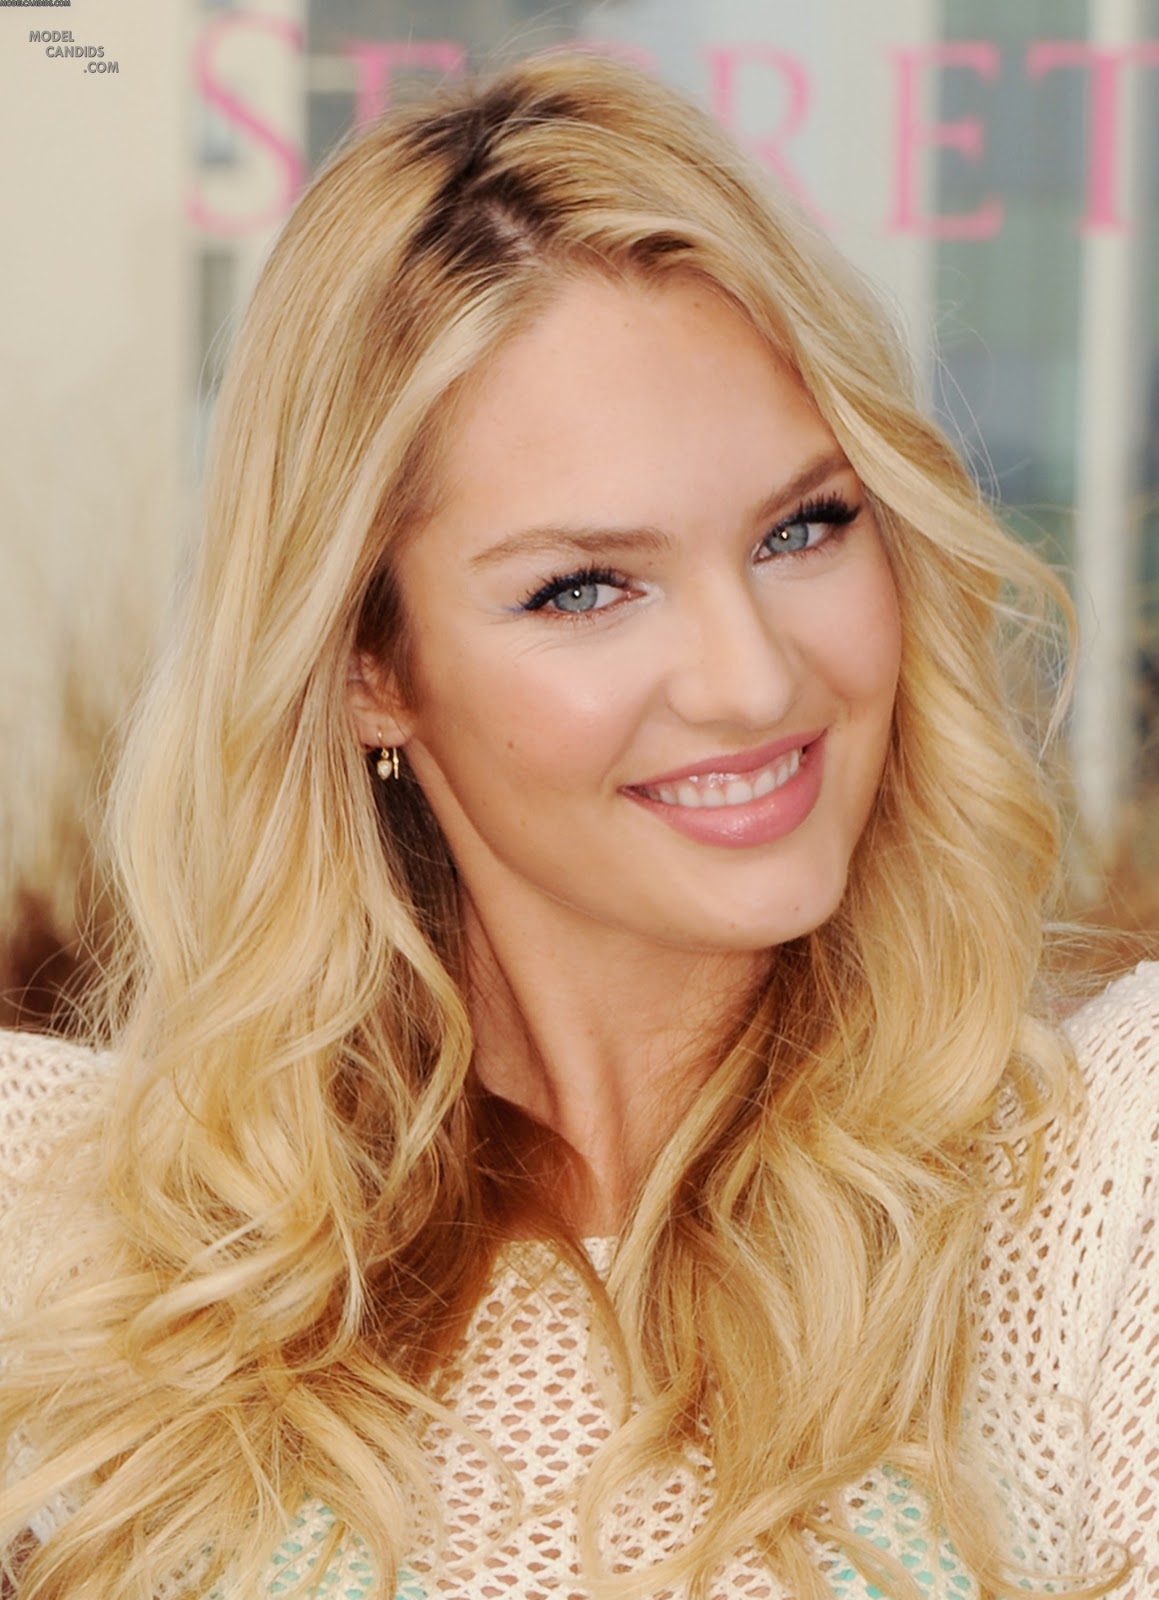 Candice Swanepoel Workout Diet Boxes And Circuit